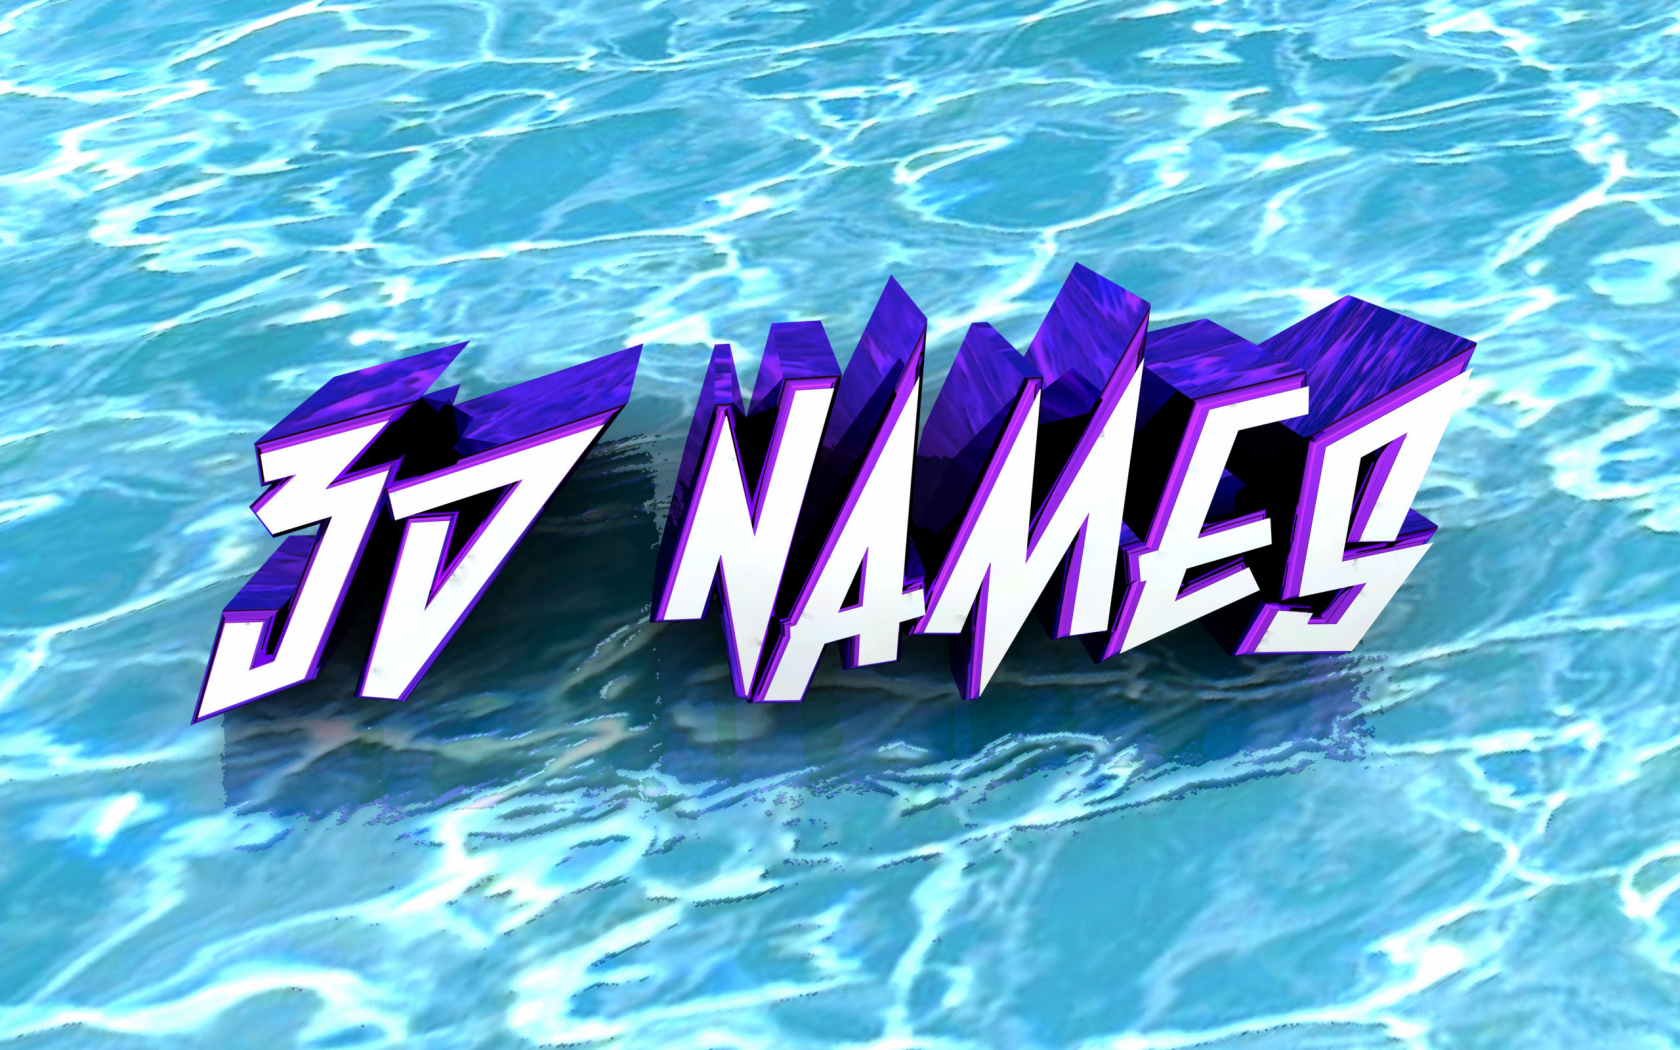 Free download 3D Name Wallpapers Animations [2560x1600] for